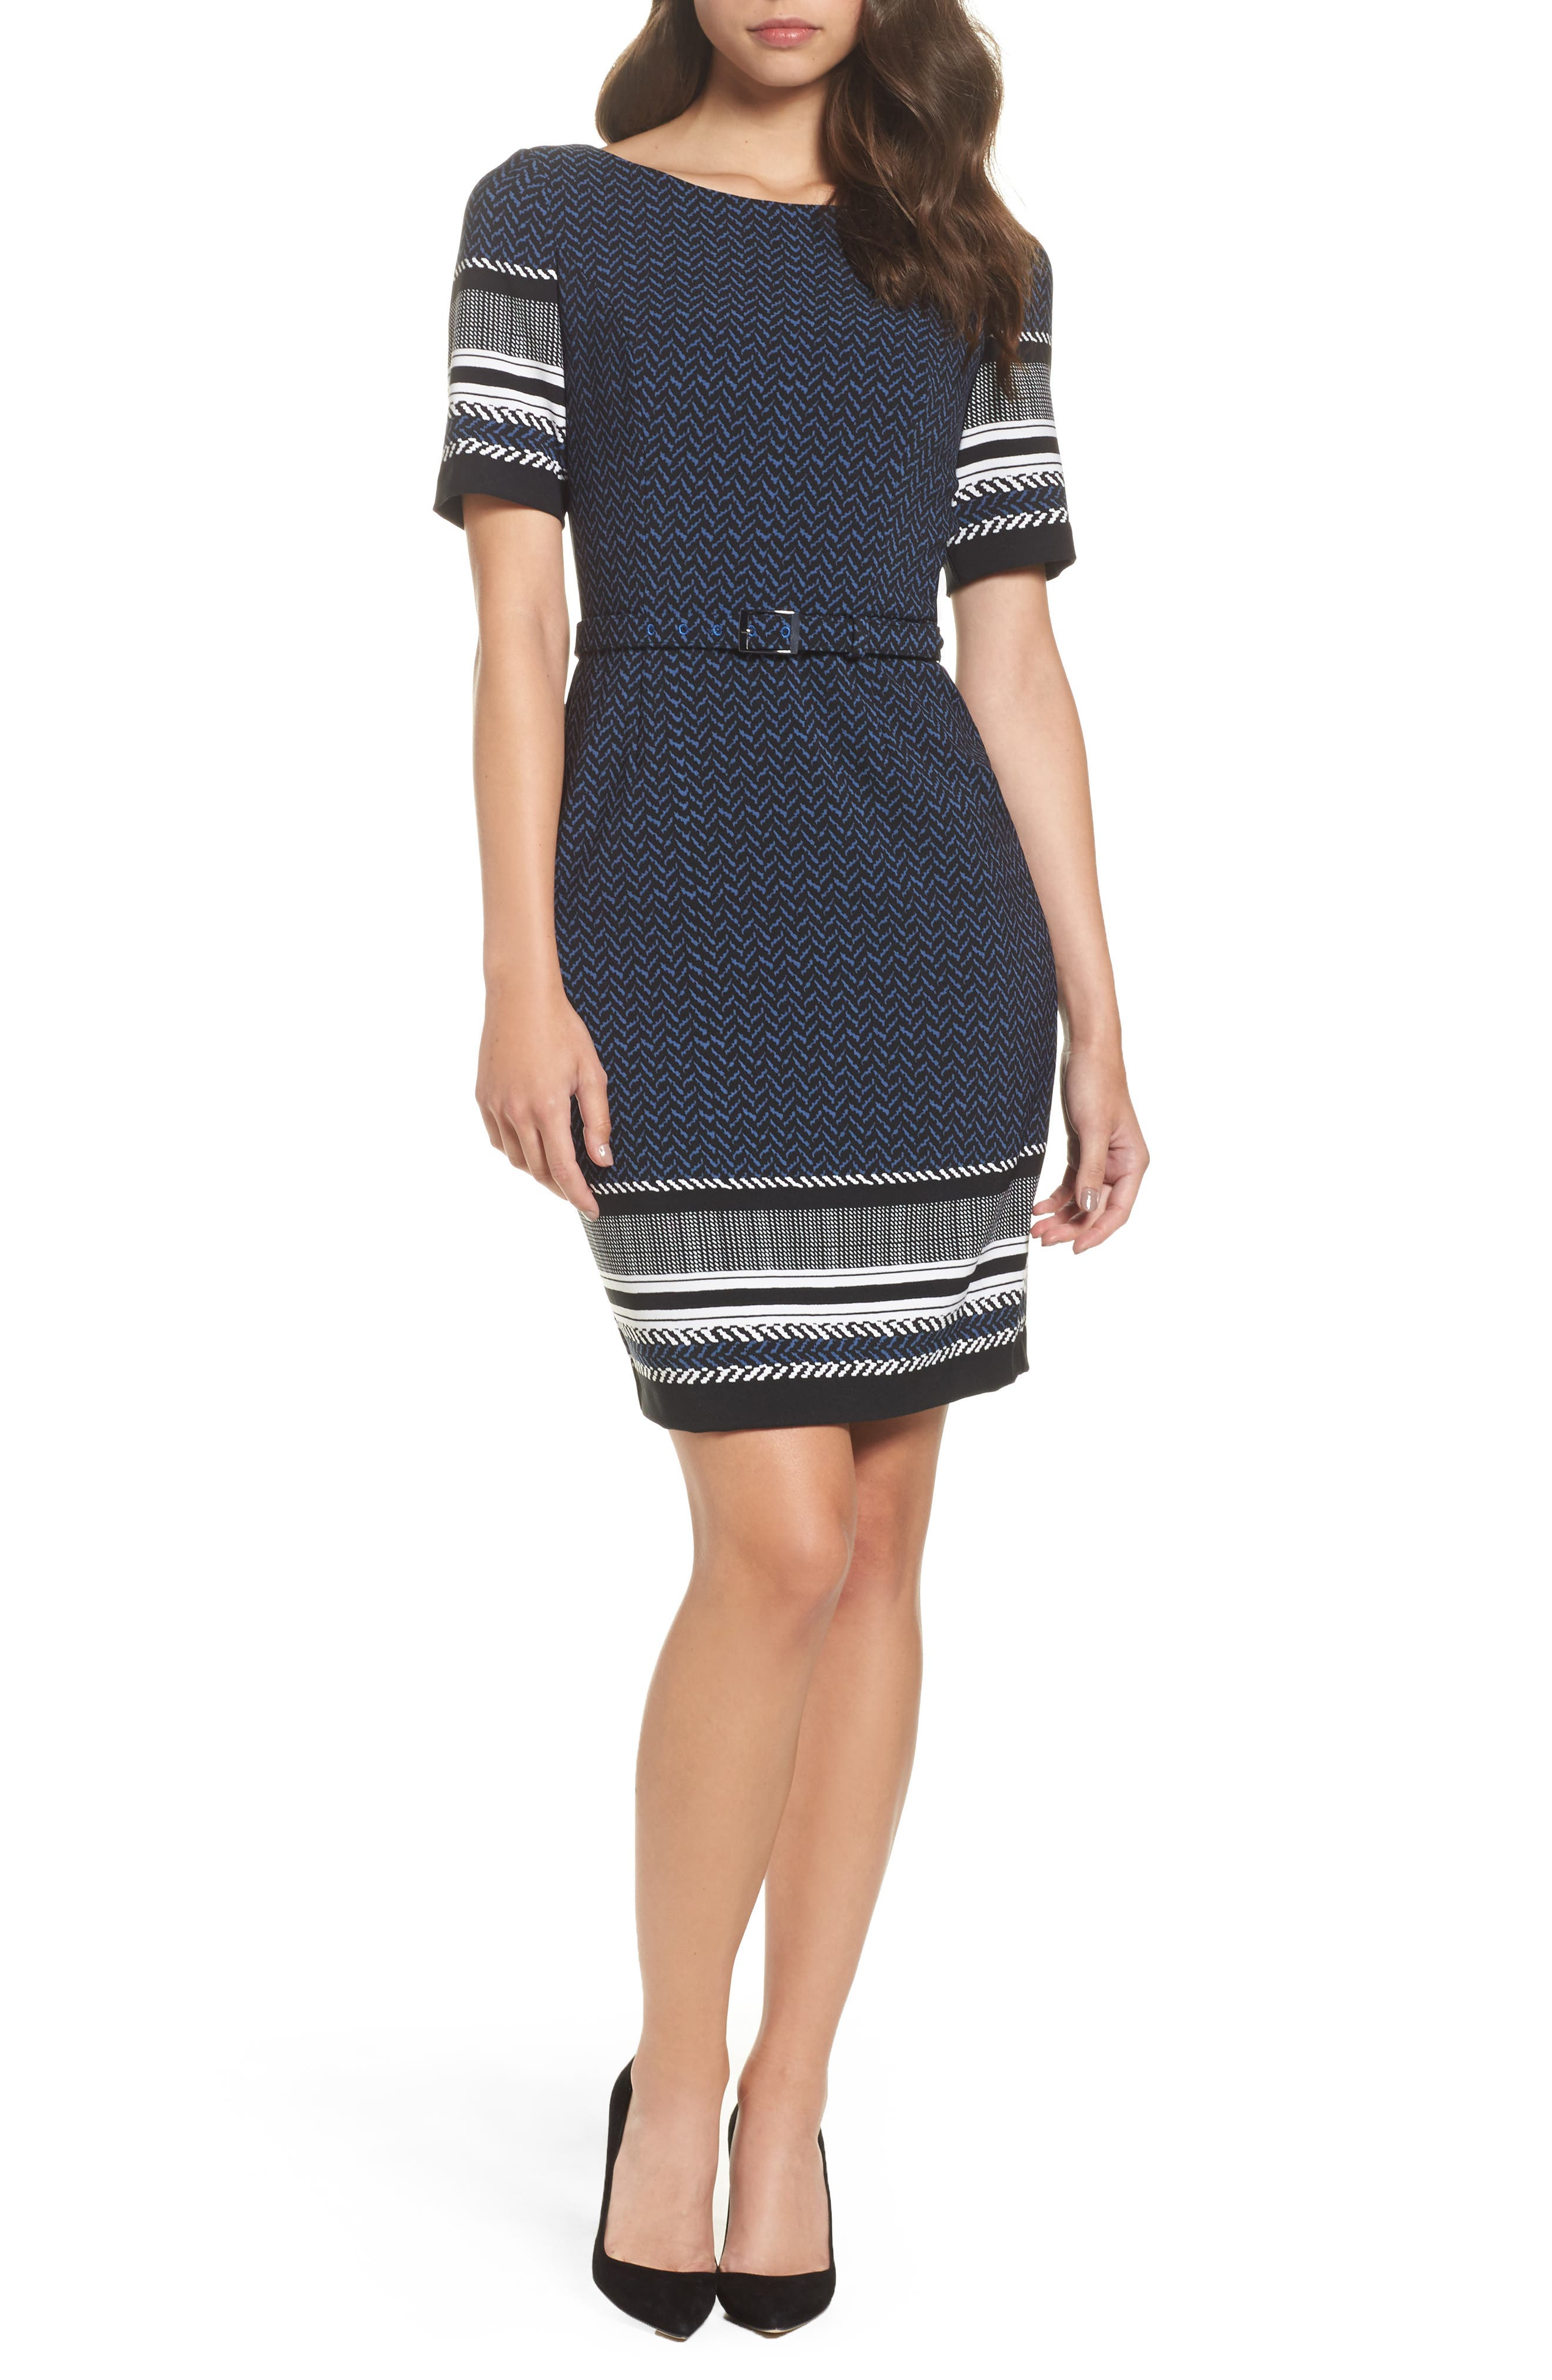 Alternate Image 1 Selected - Adrianna Papell Mixed Herringbone Sheath Dress